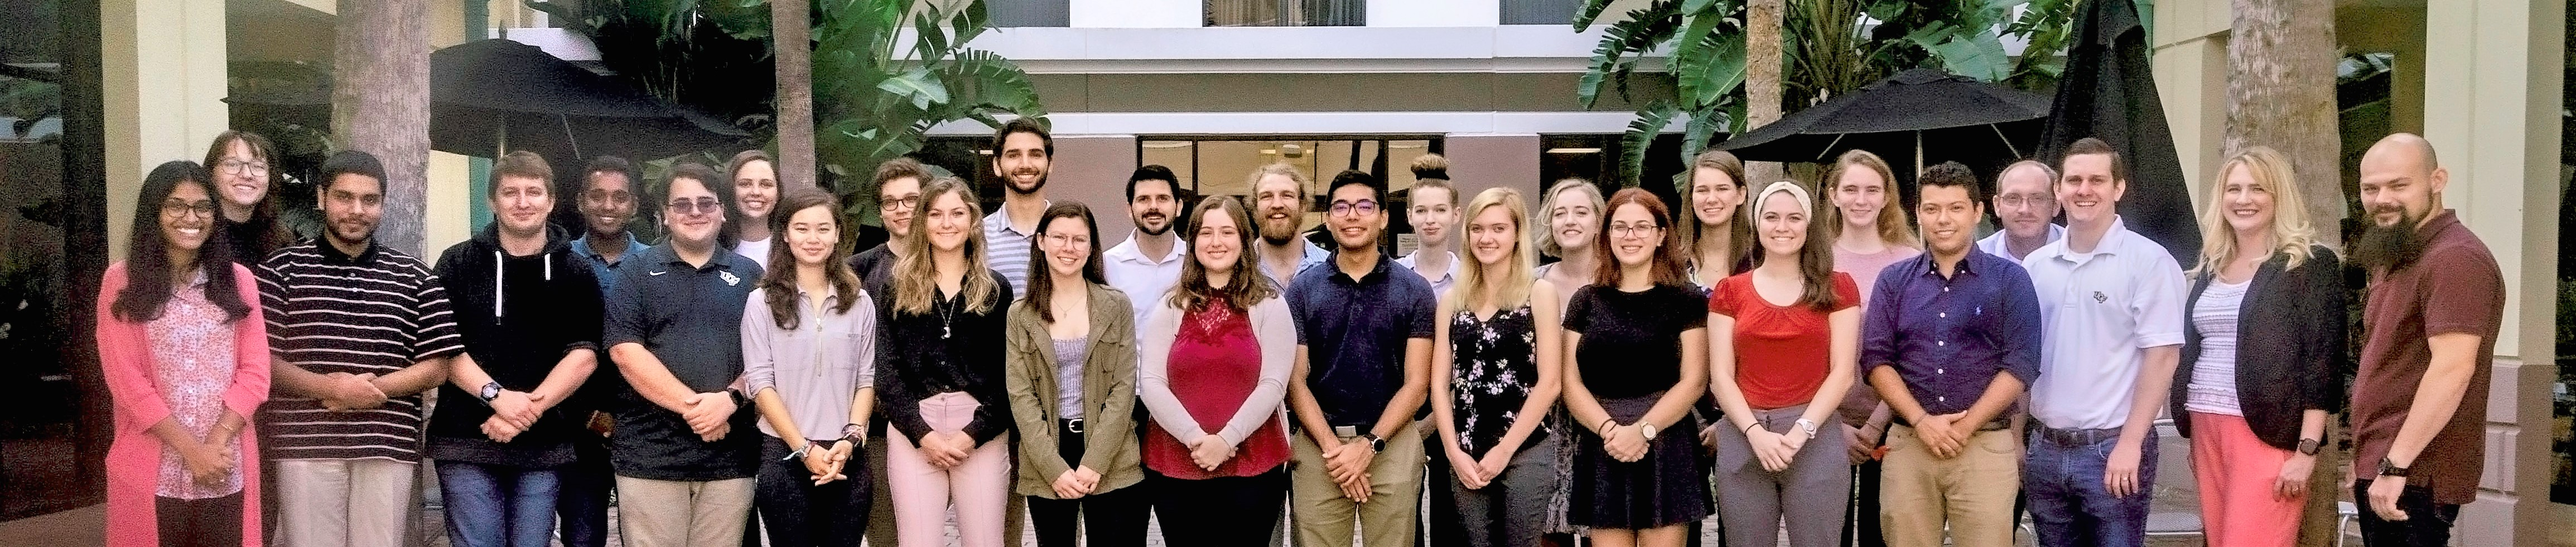 Group picture of Limbitless Solutions Spring 2019 Interns